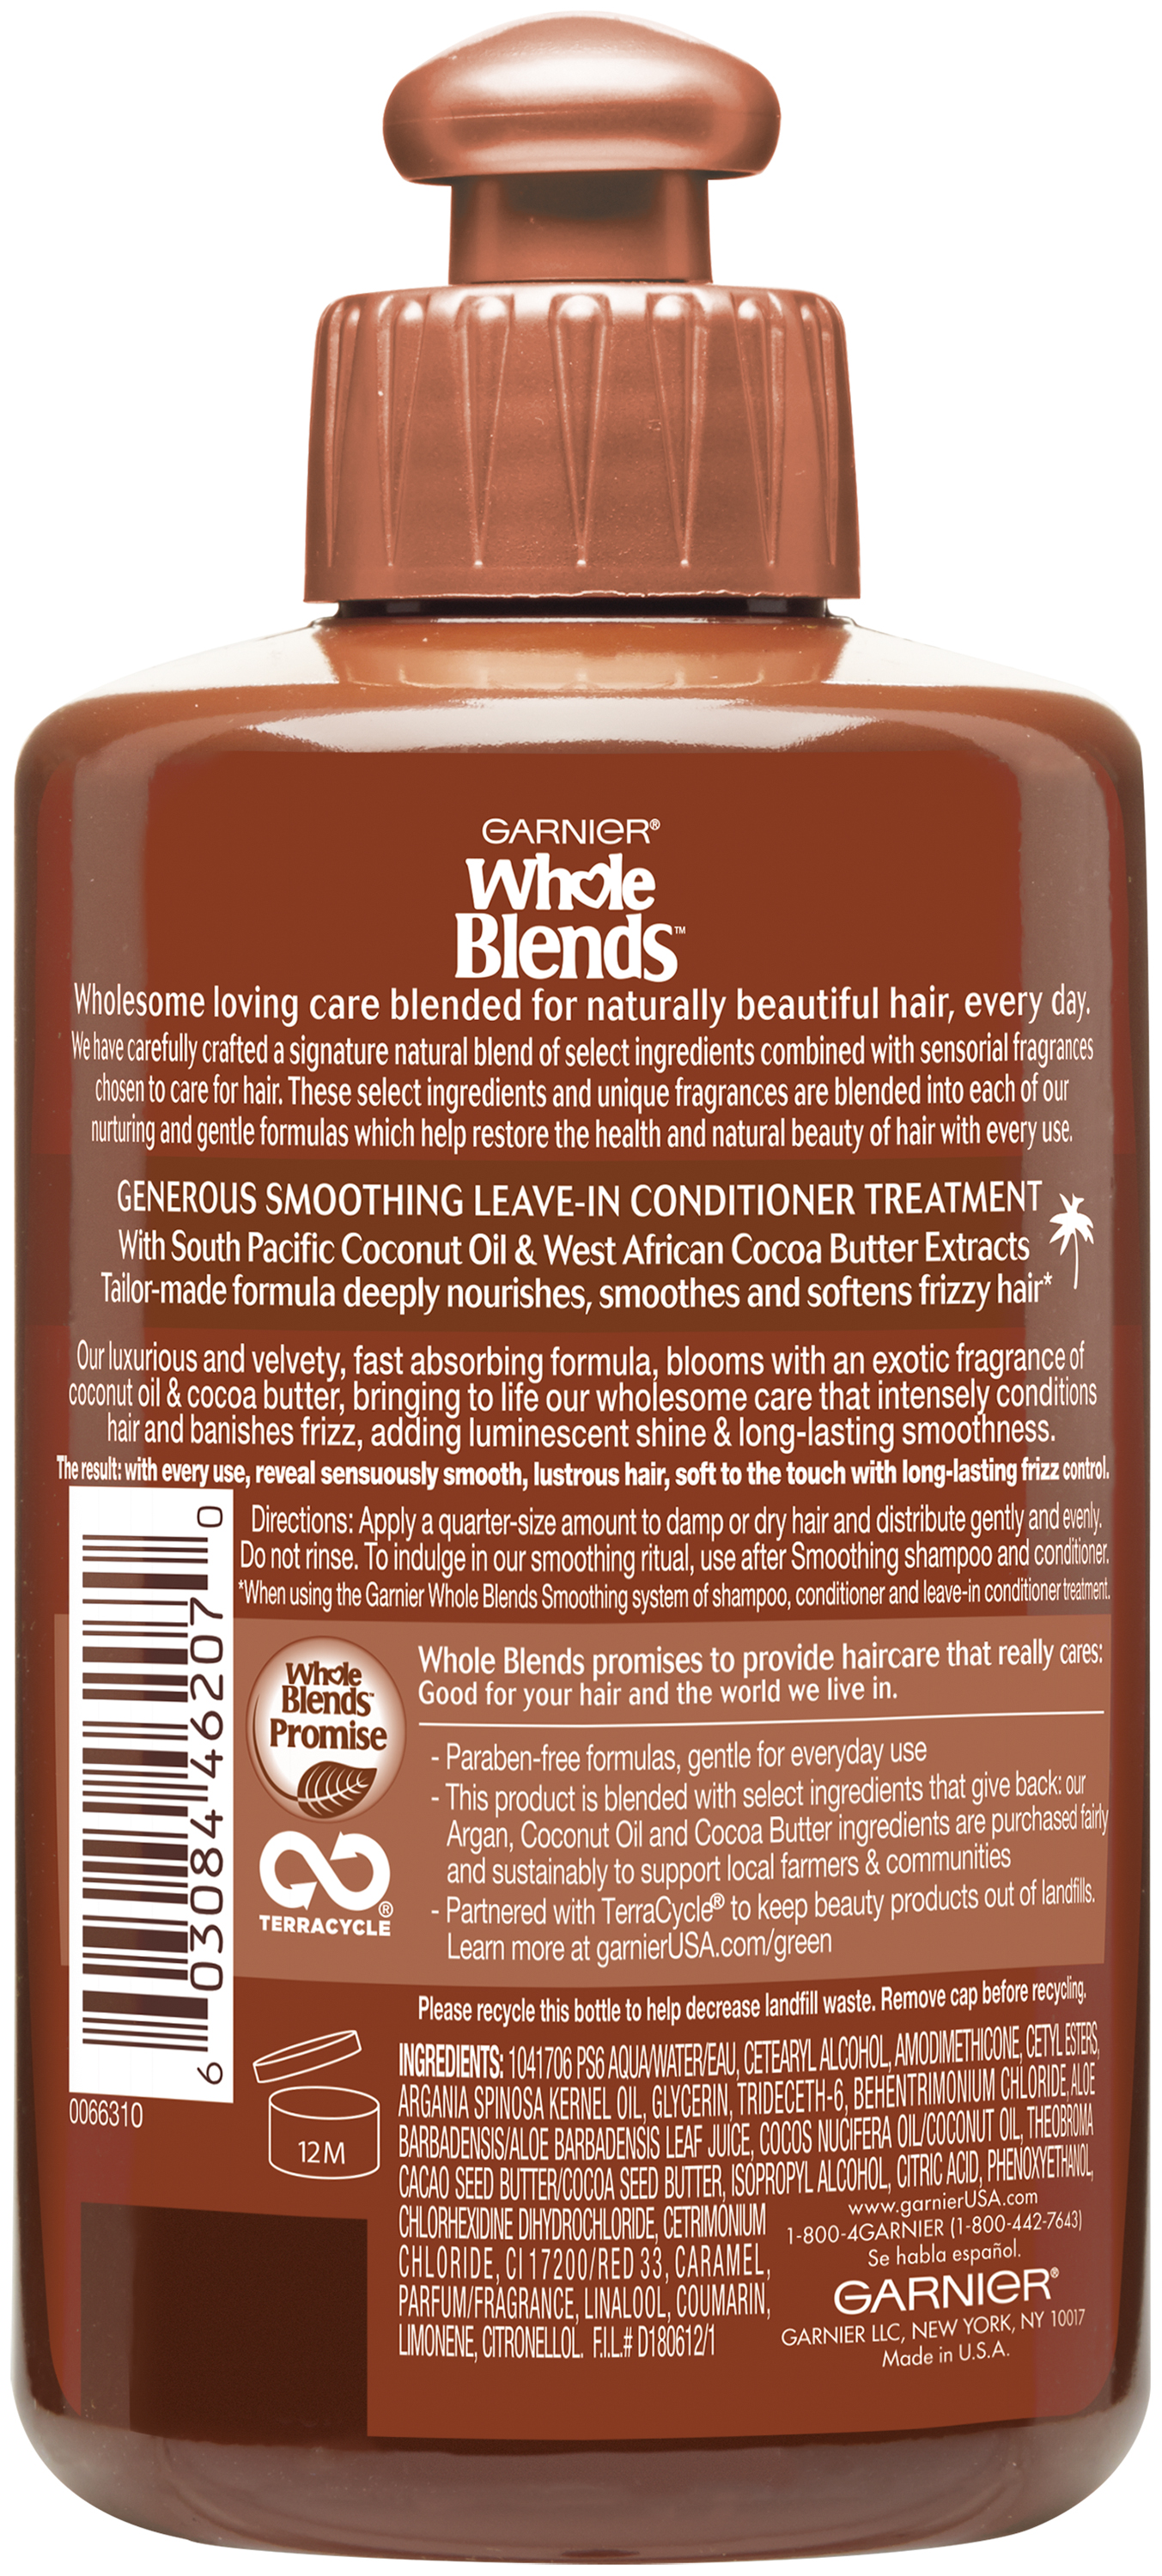 Garnier® Whole Blends™ Coconut Oil & Cocoa Butter Extracts Smoothing Leave-In Conditioner 10.2 fl. oz. Bottle